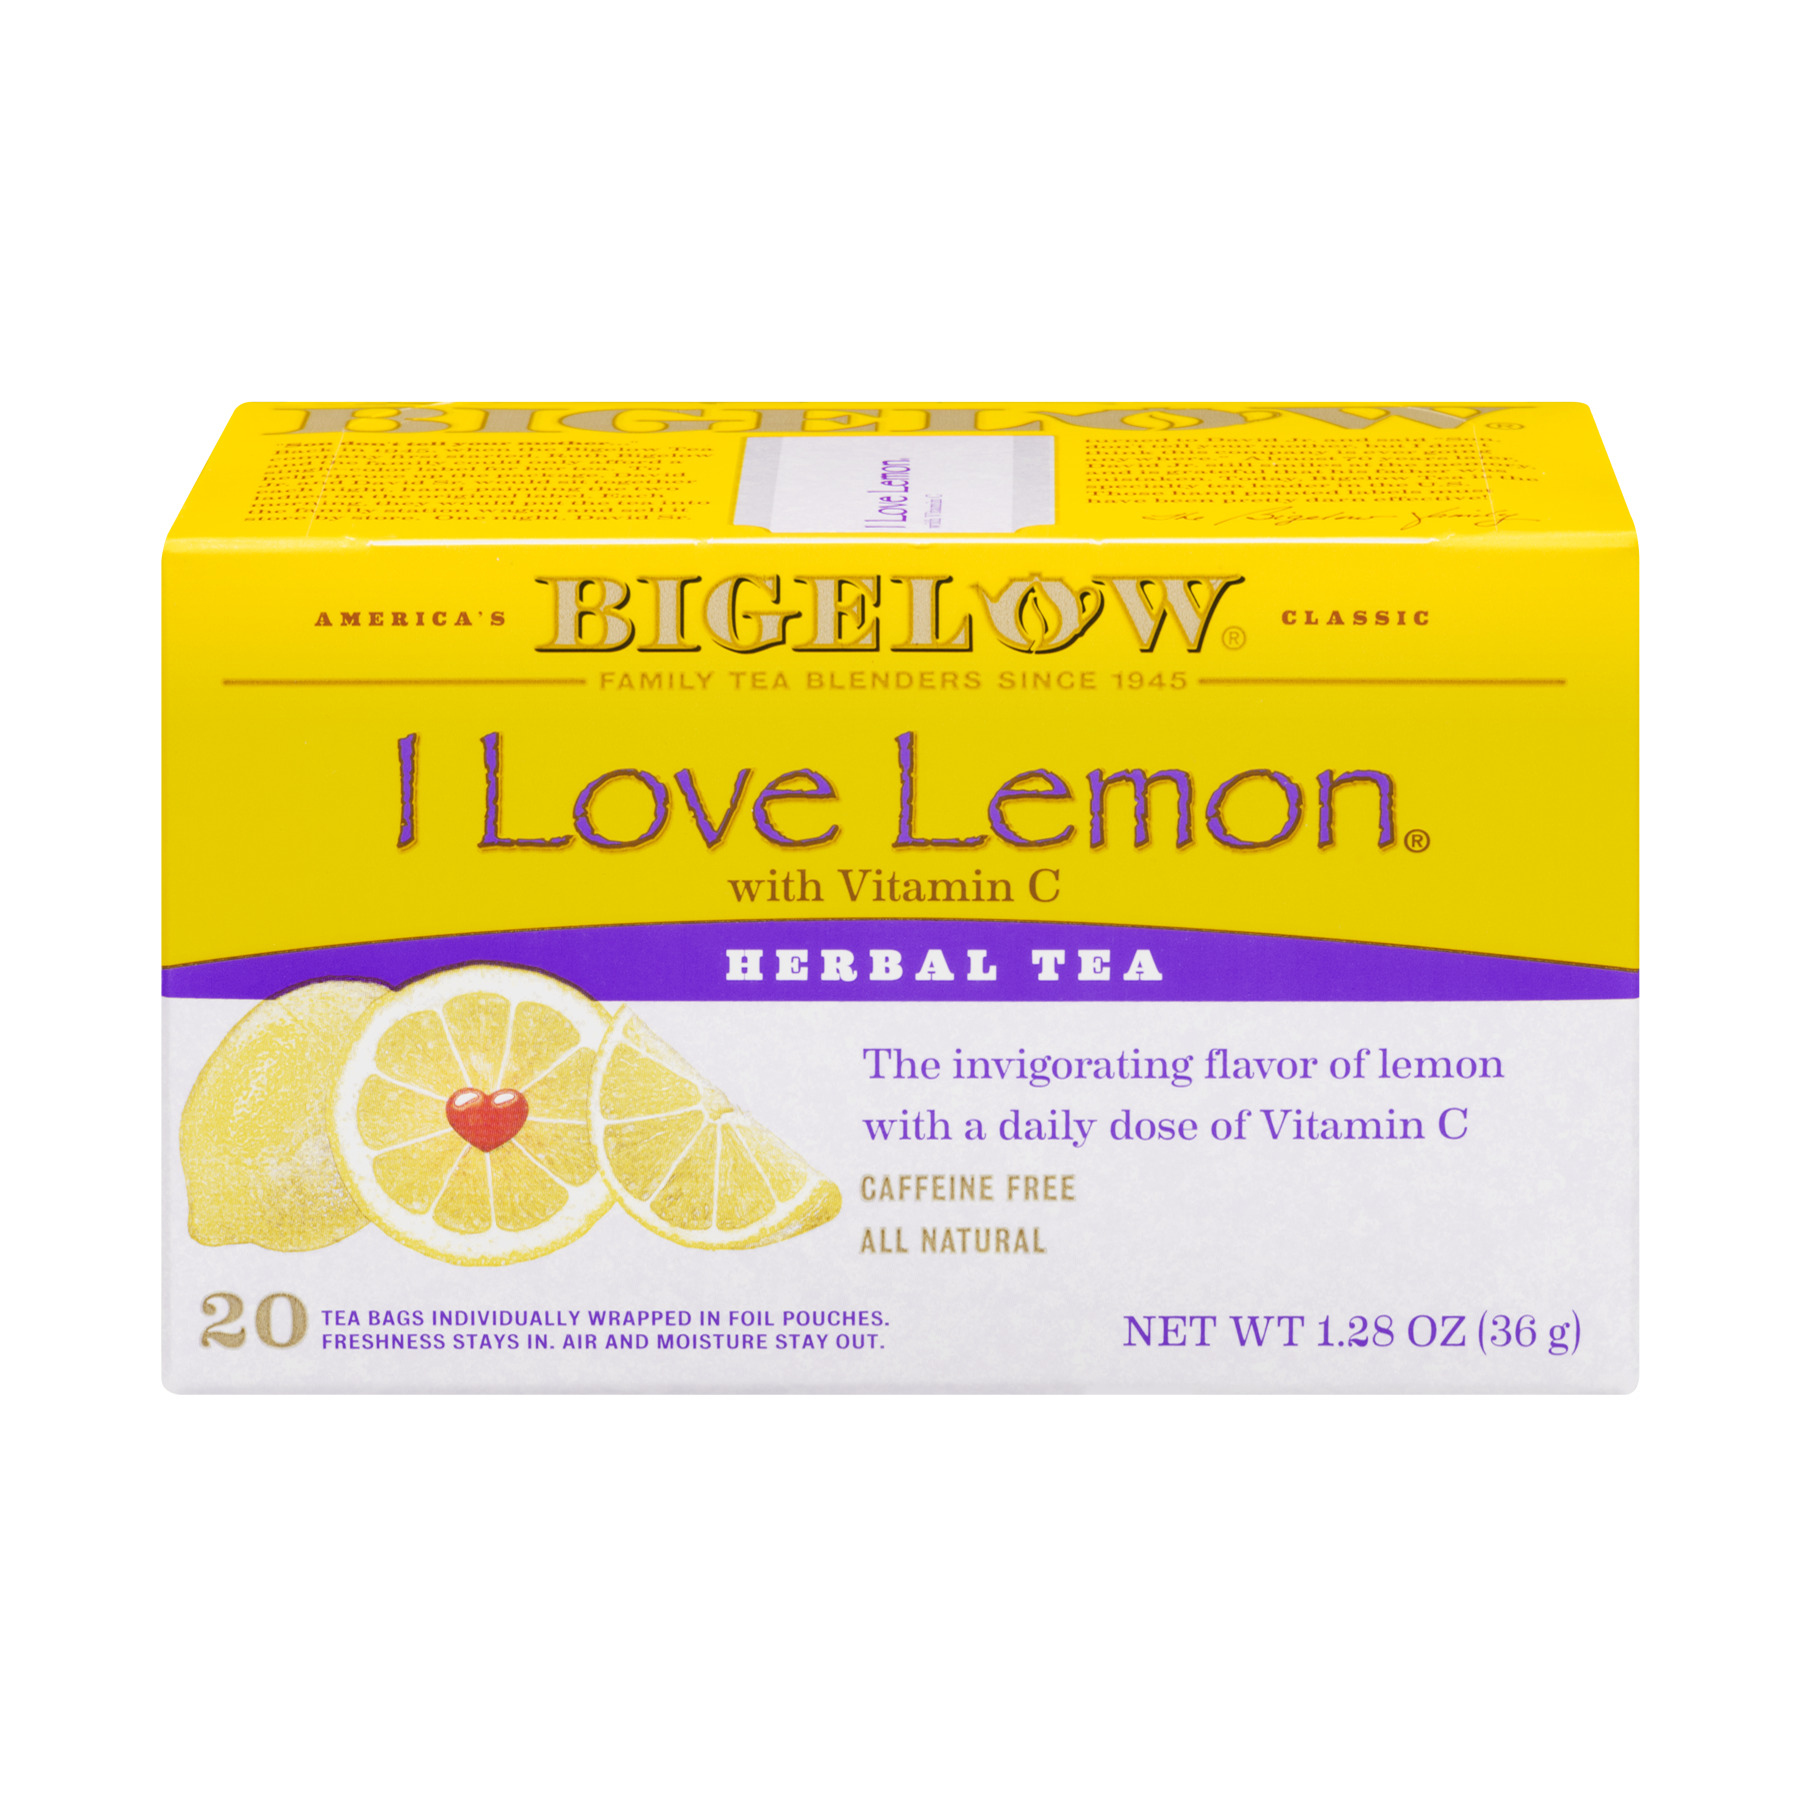 Bigelow Herbal Tea I Love Lemon - 20 CT20.0 CT